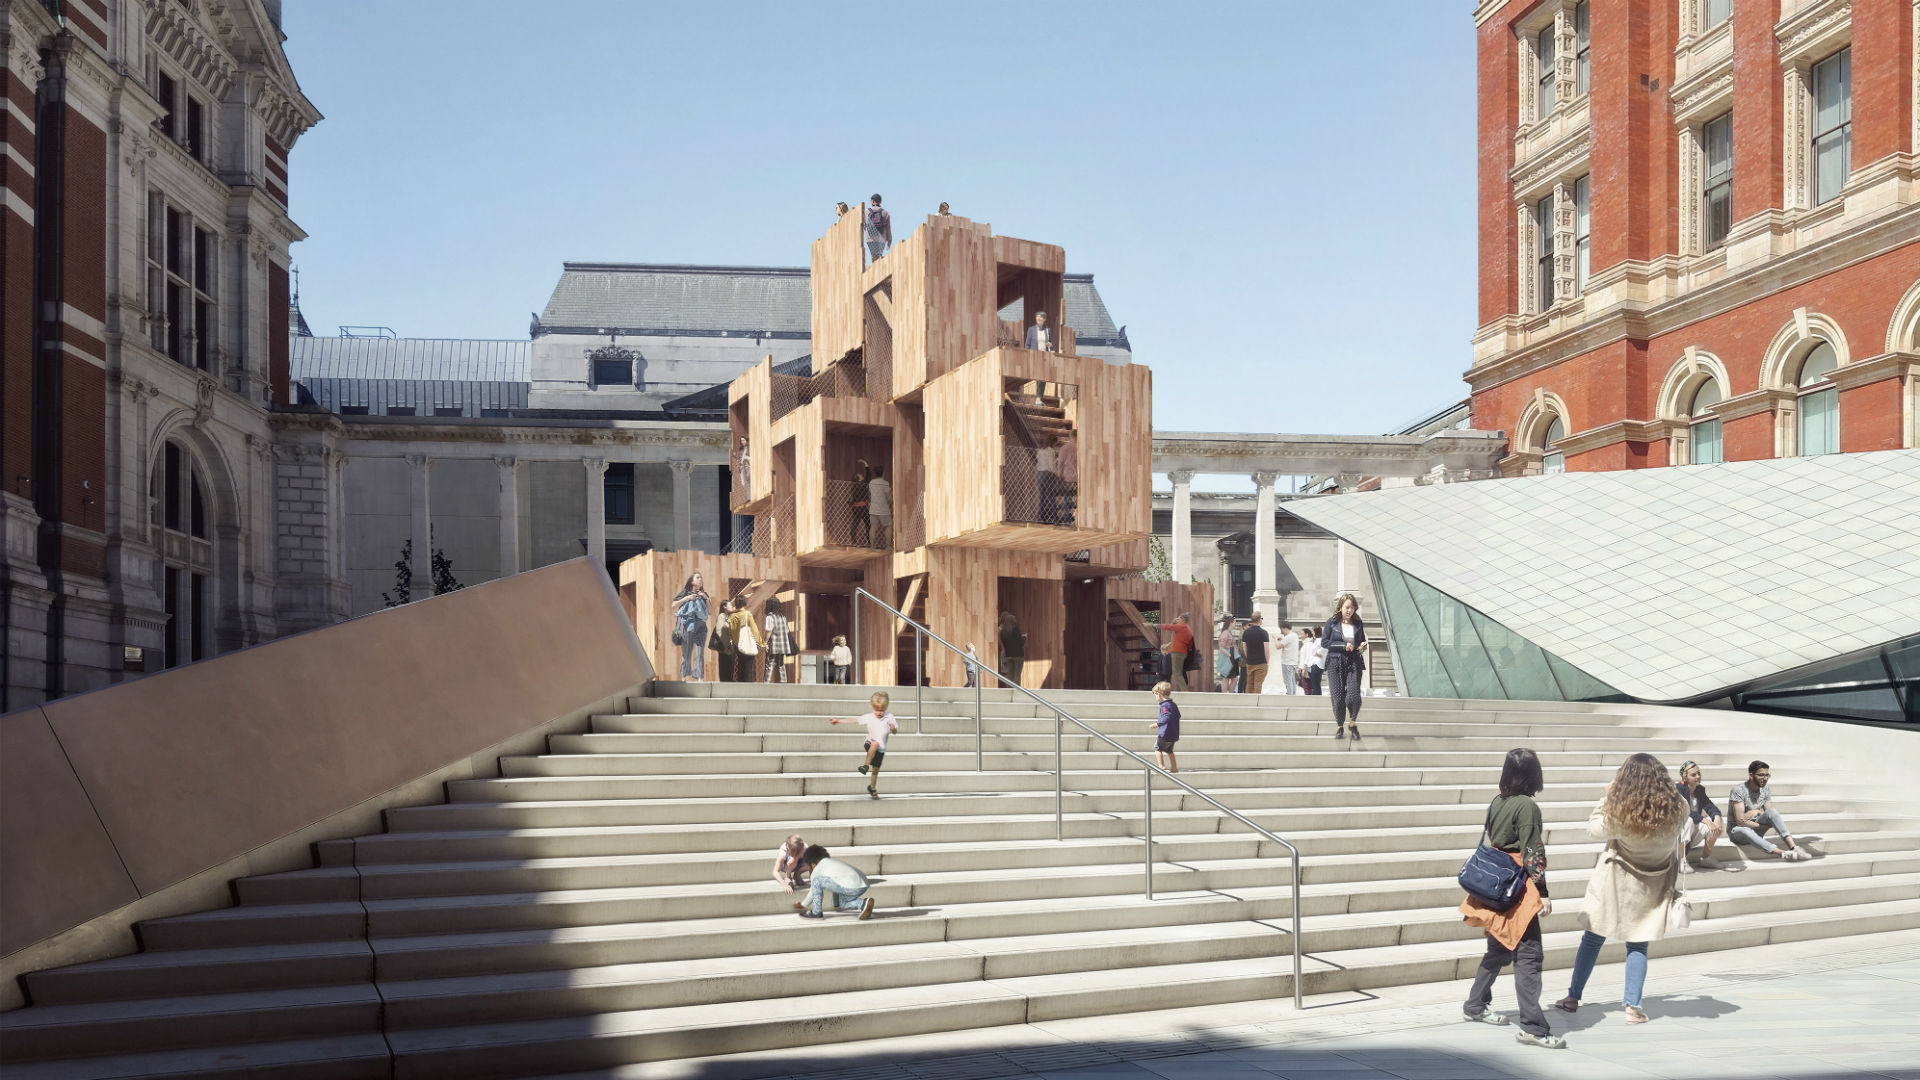 MultiPly installation by Waugh Thistleton Architects is displayed in the sunshine at the top of a set of steps